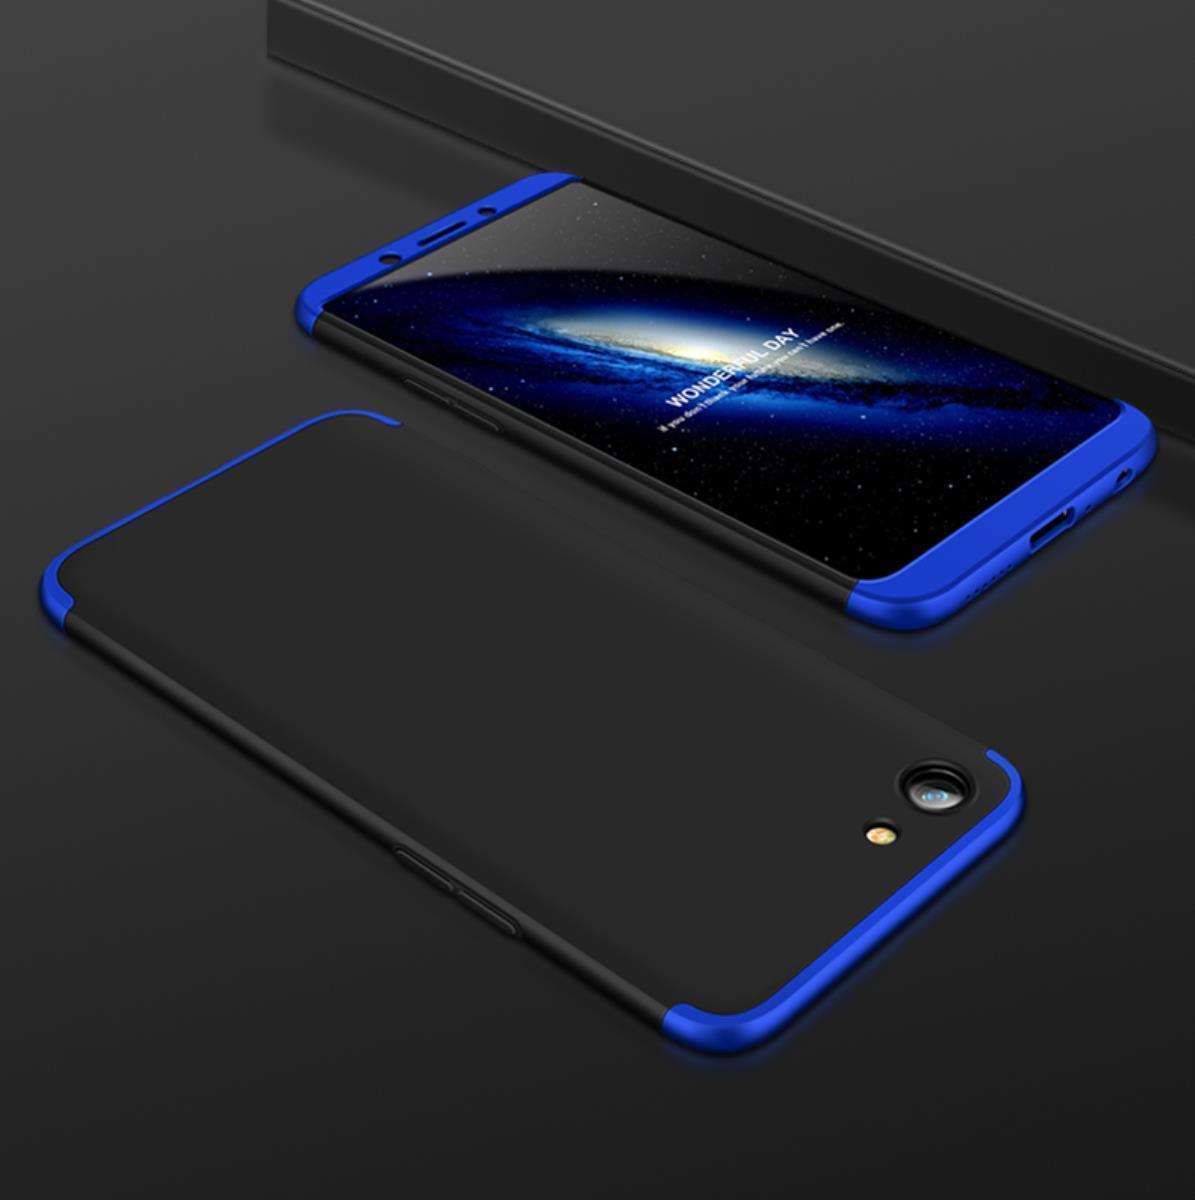 HUAWEI MATE 10 LITE - 3 In 1 360 Degree Back Cover In Black & BLUE